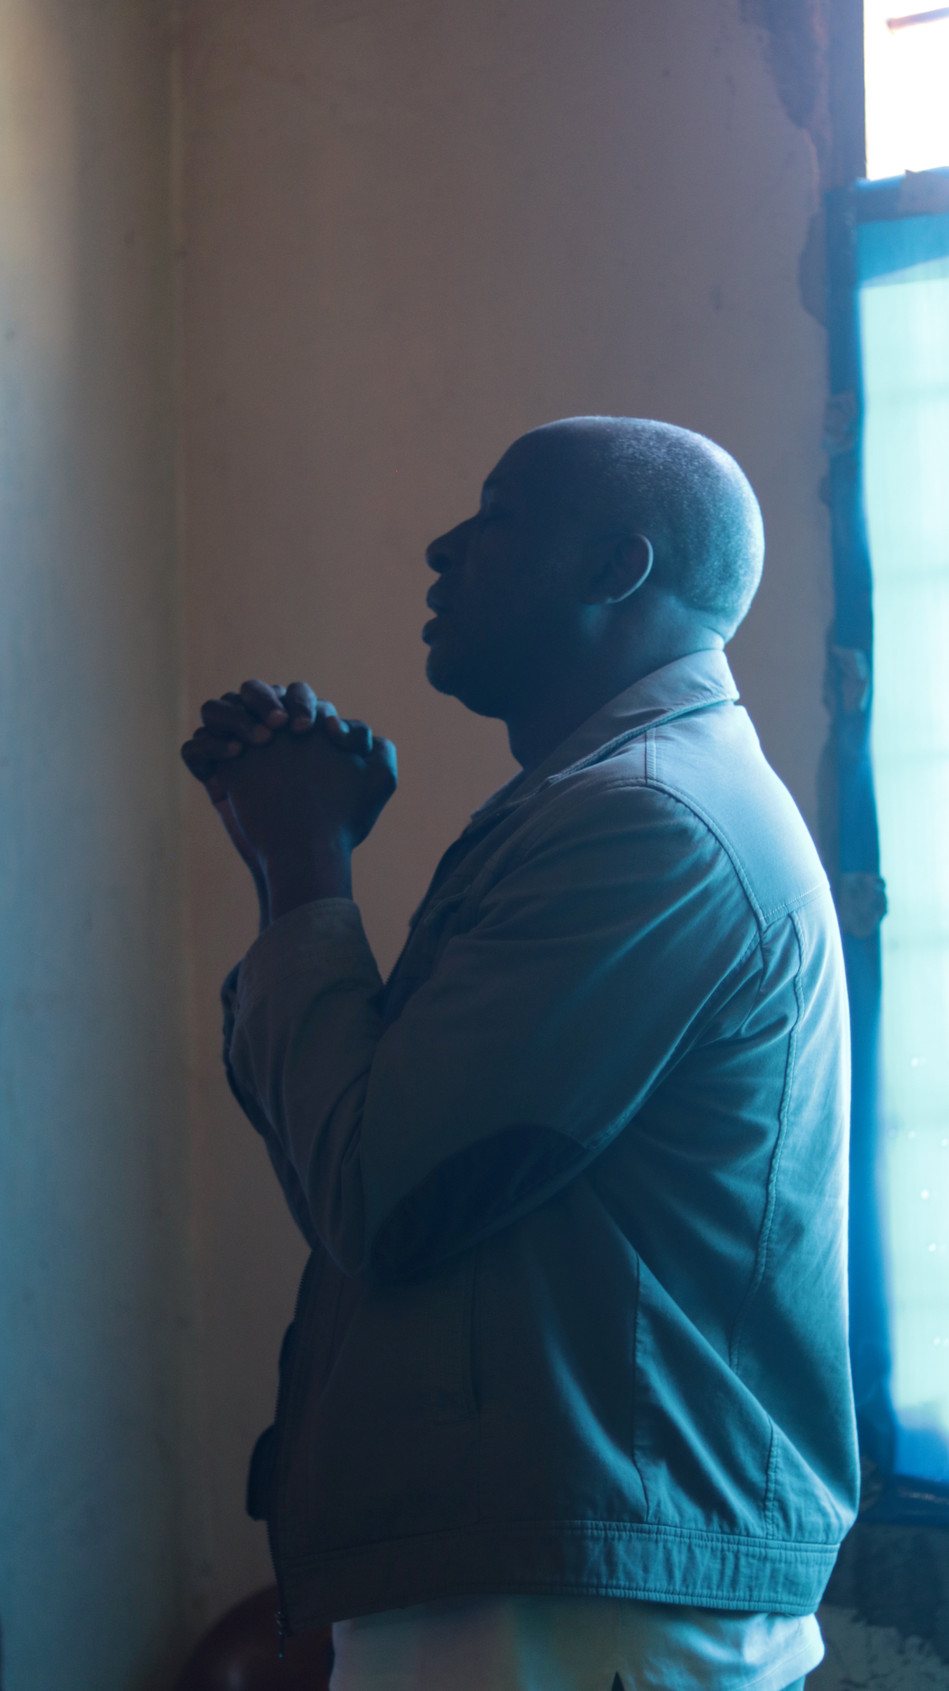 Wandamba in prayer for the afternoon's evangelism and initial discipleship of the new believers